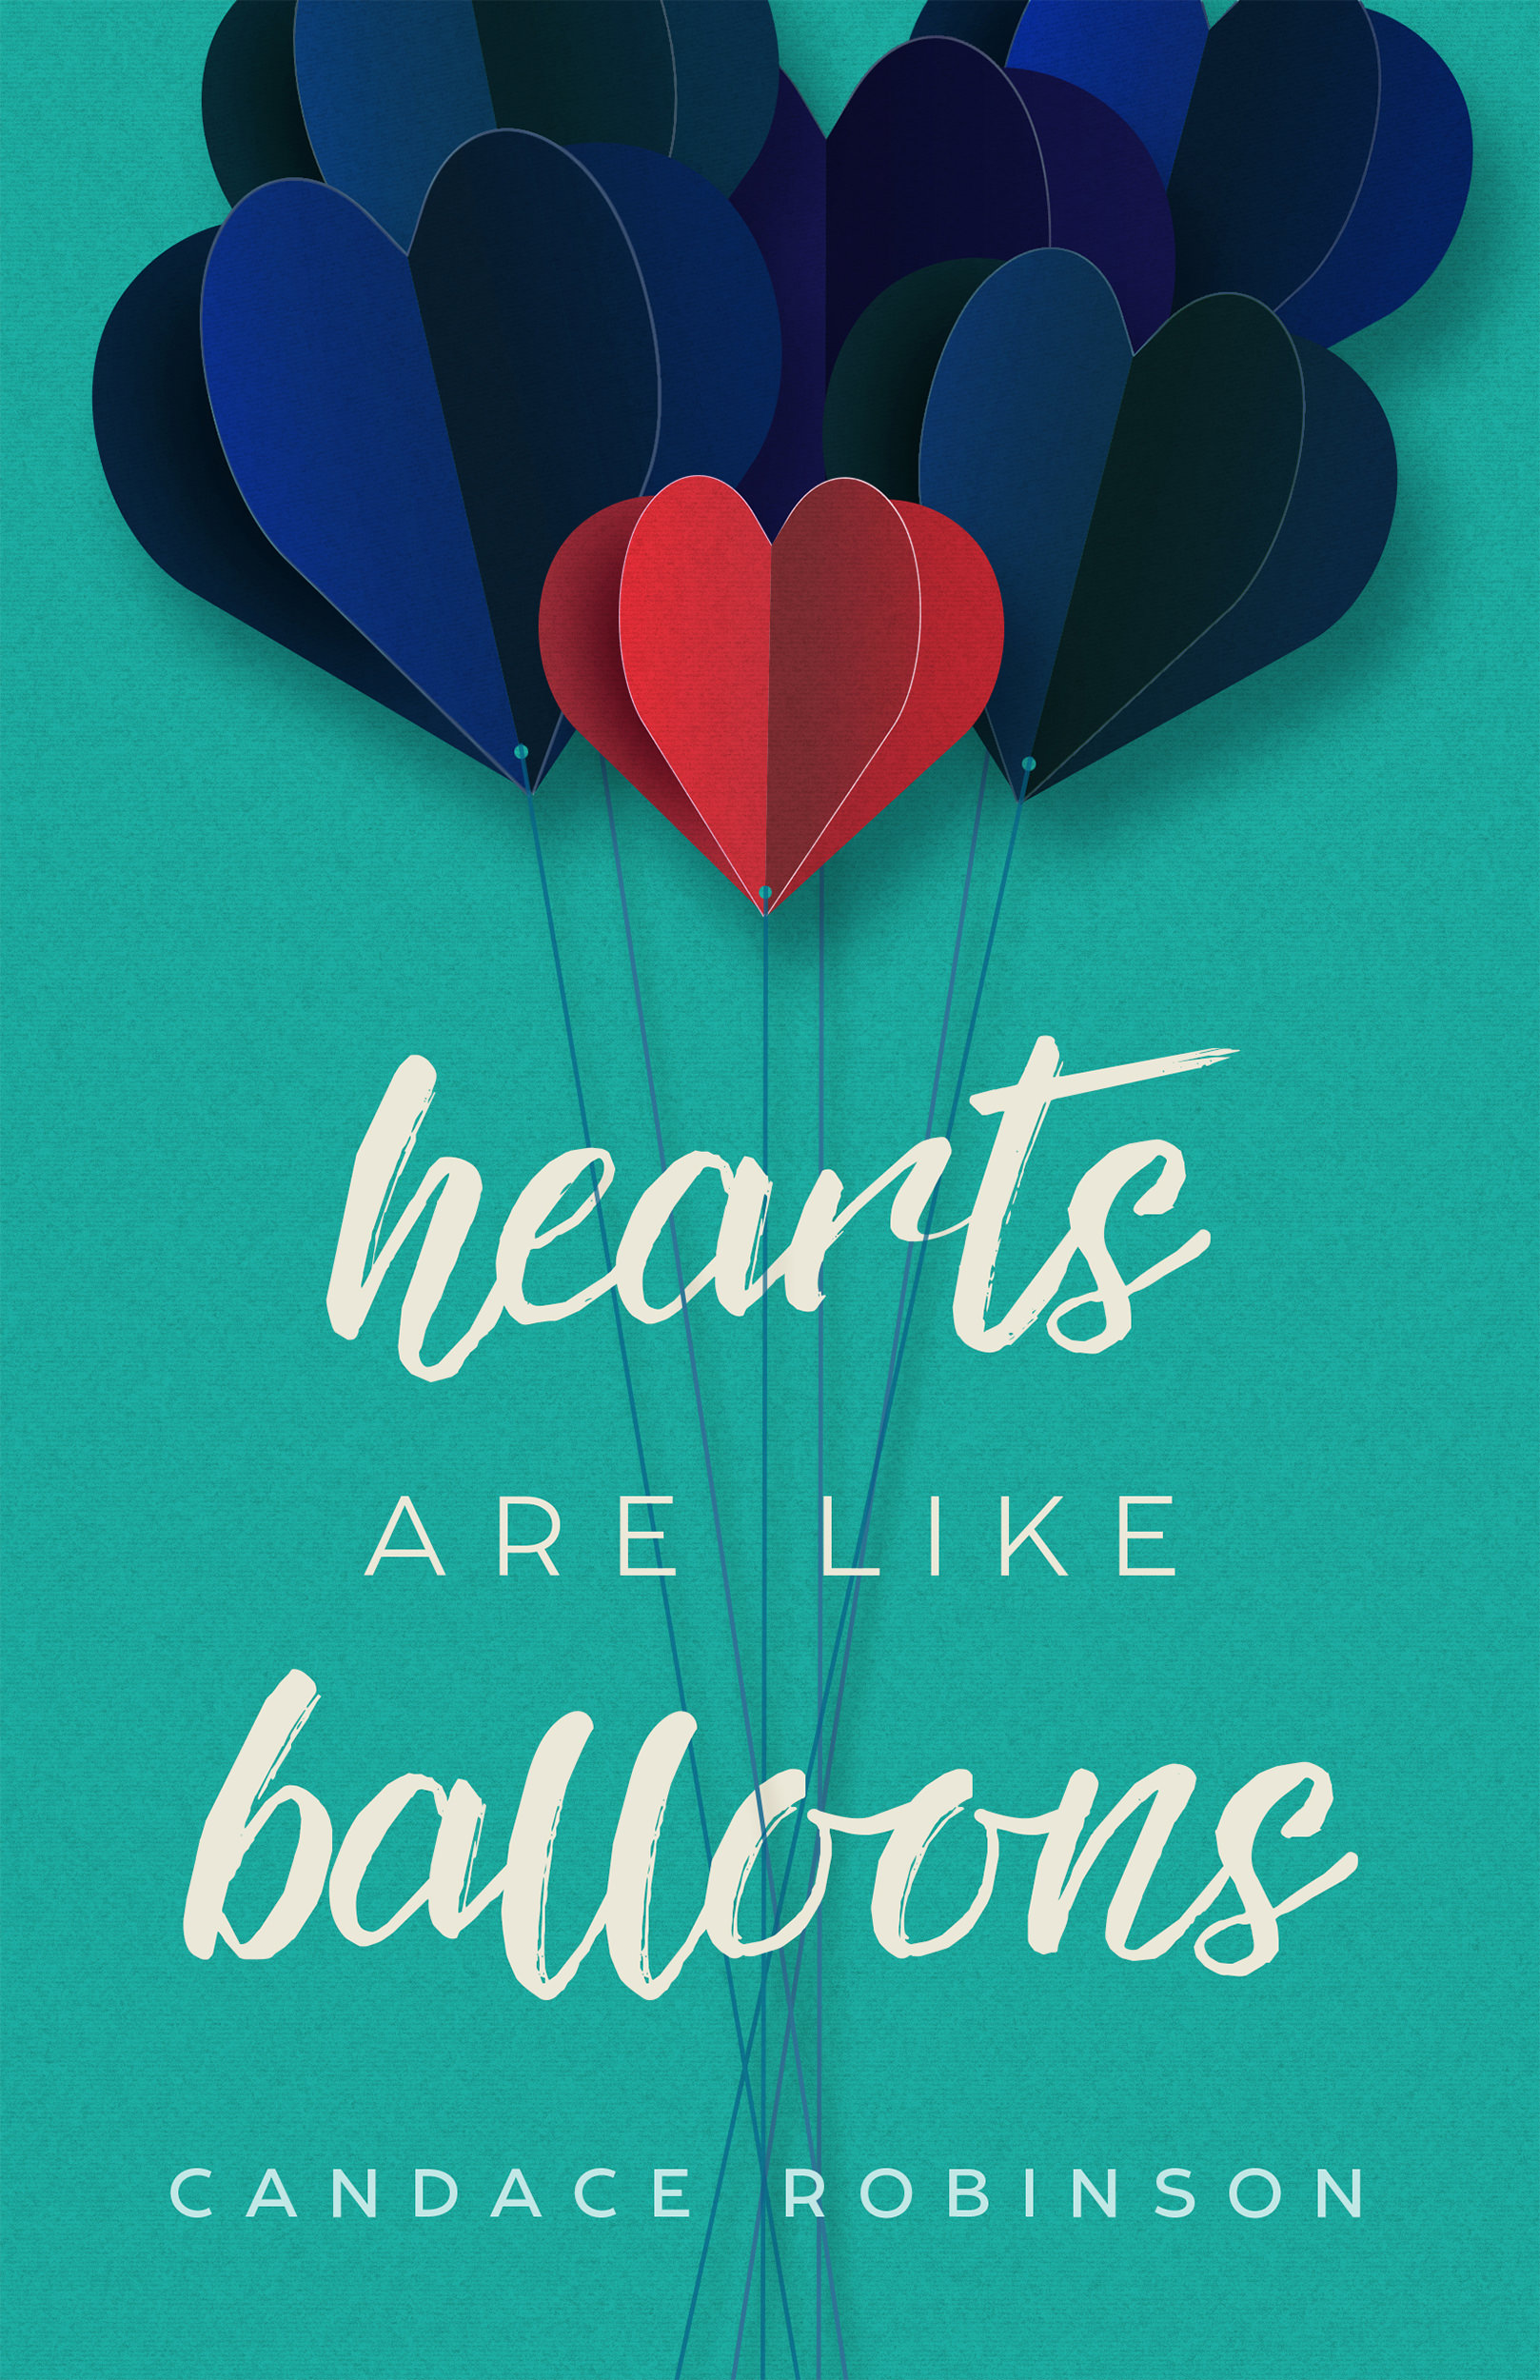 Hearts Are Like Balloons